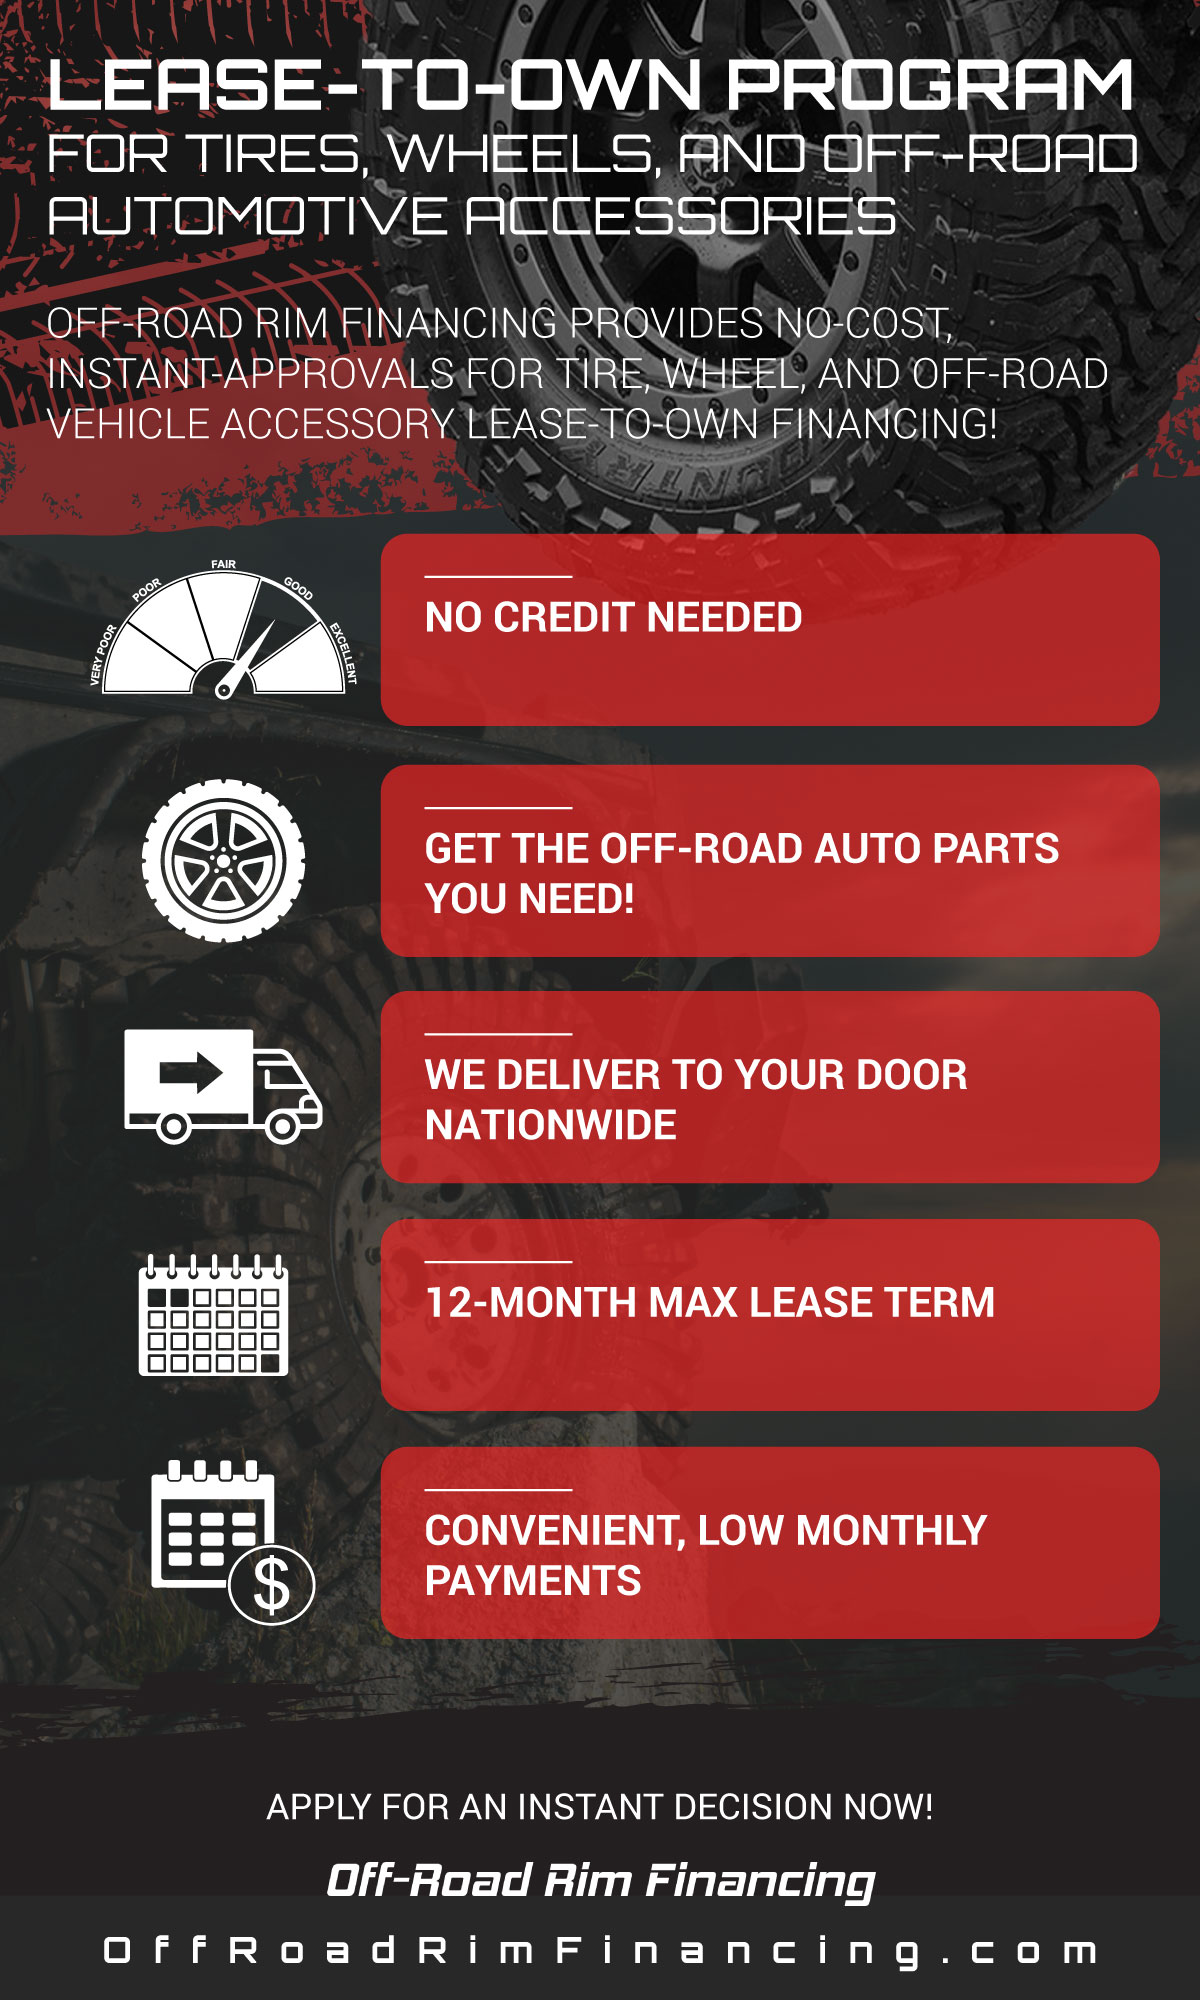 lease-to-own-program-for-tires-wheels-and-off-road-automotive-accessories-607703c2b5d2a.jpg